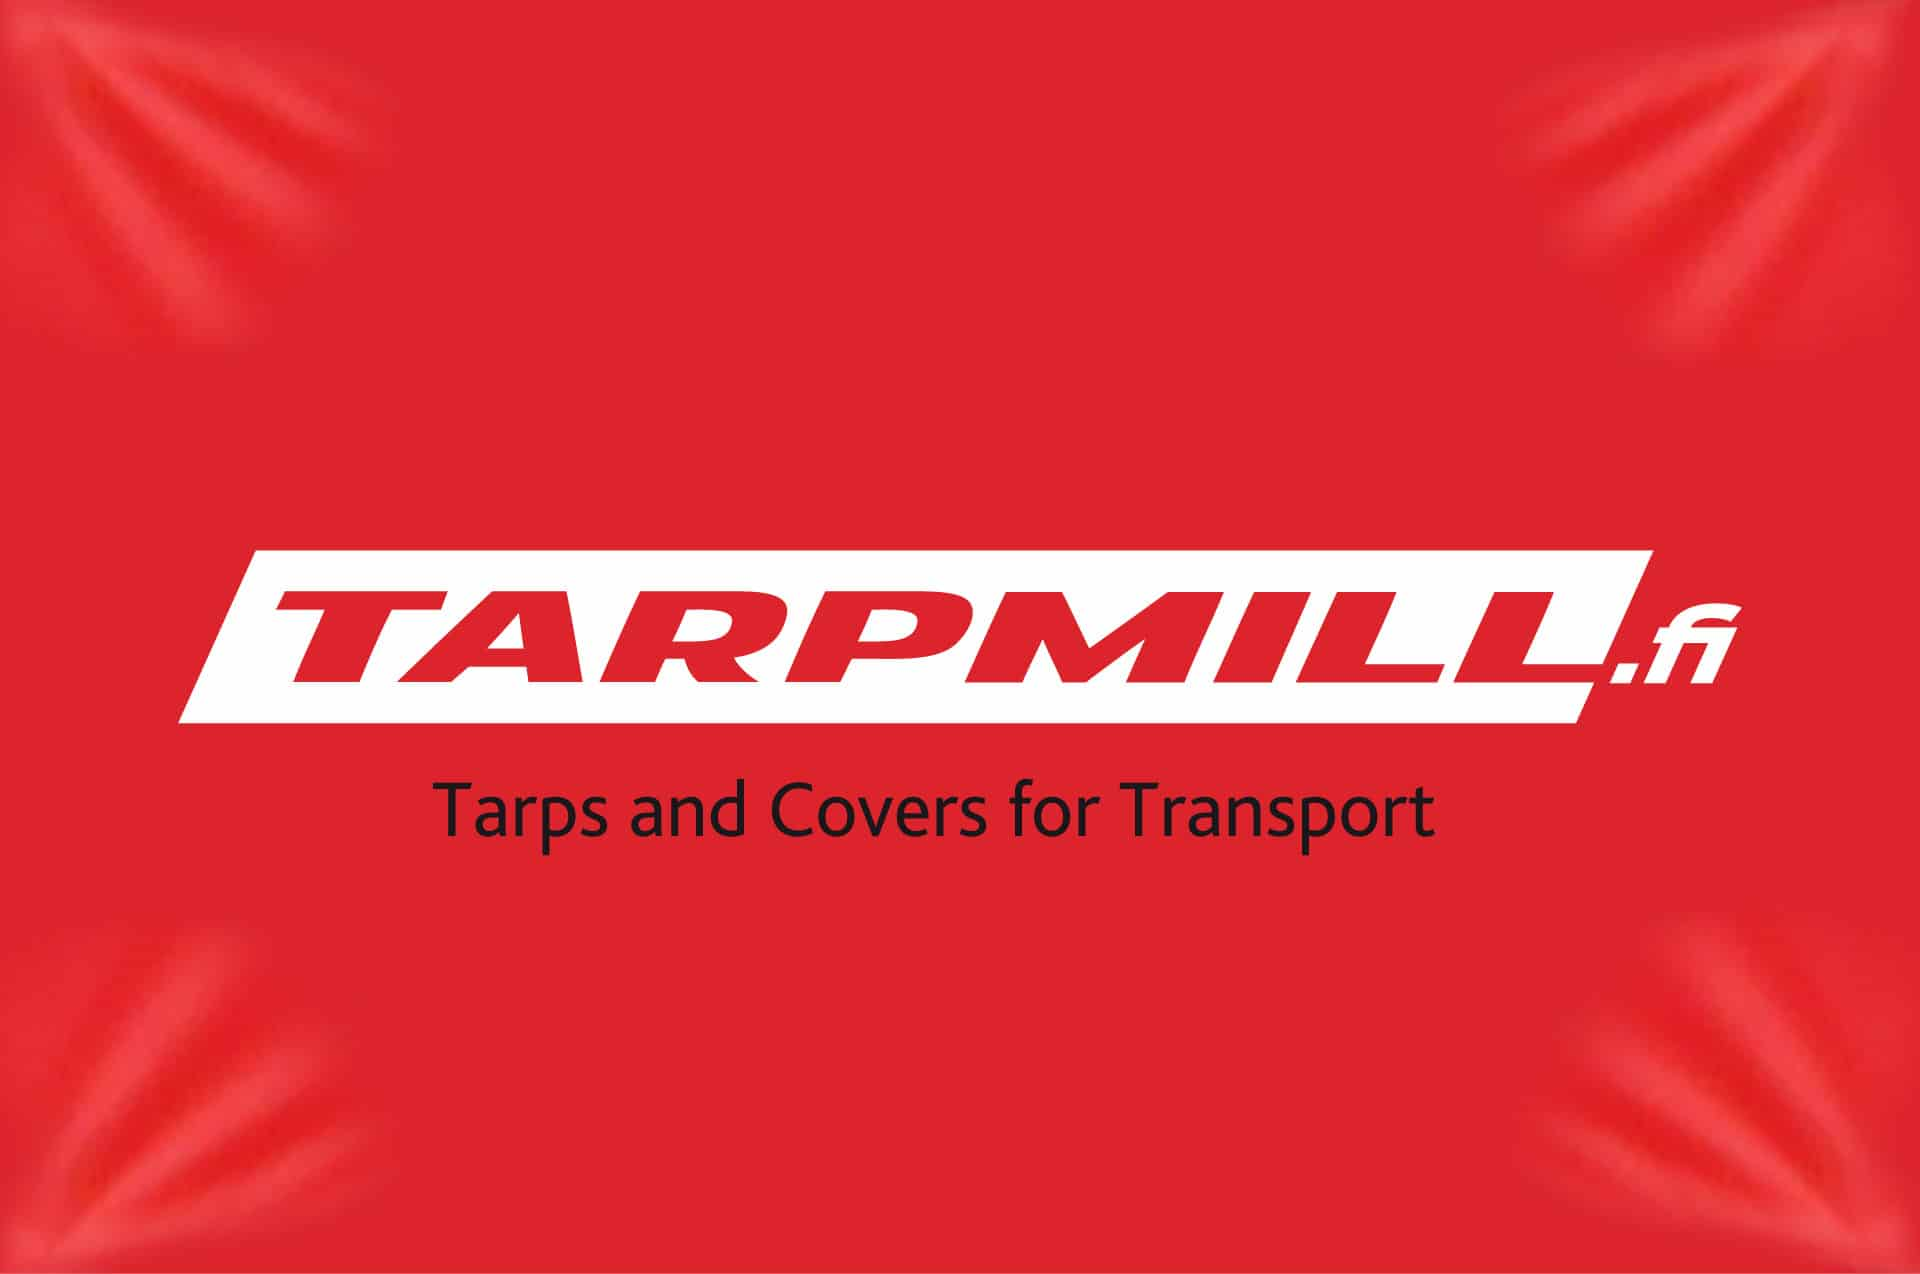 brand_design_for_producer_of_tarps_and_cargo_covers